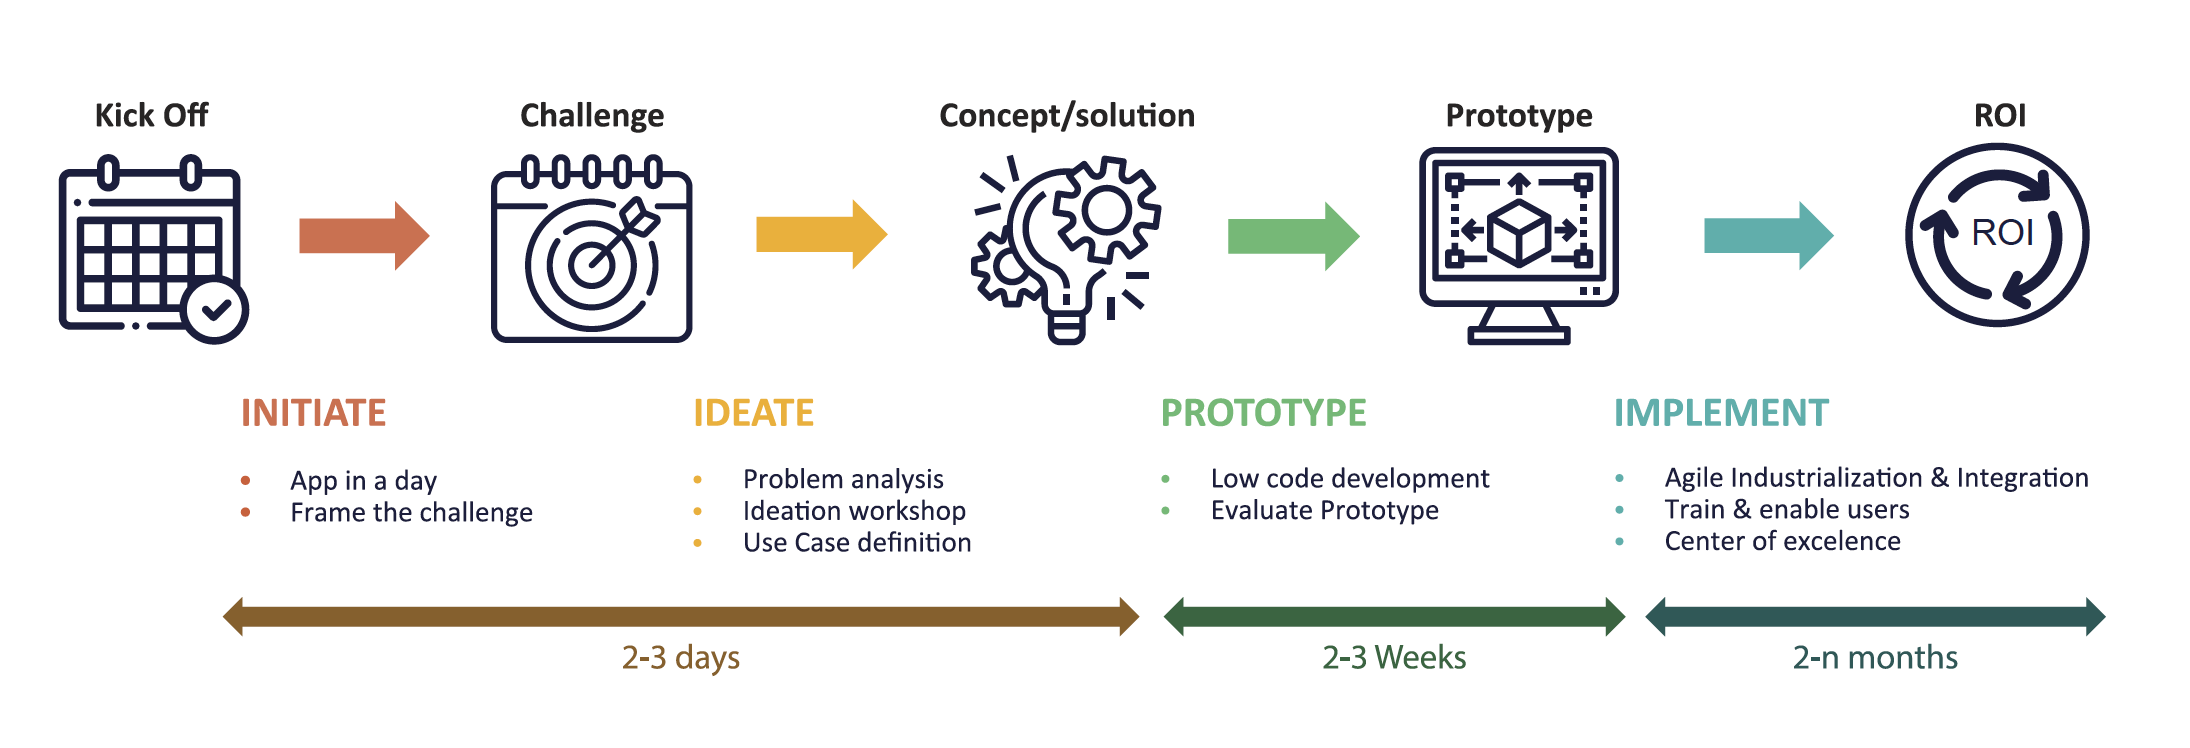 4 steps to ideate, develop prototypes and roll out to achieve full ROI.